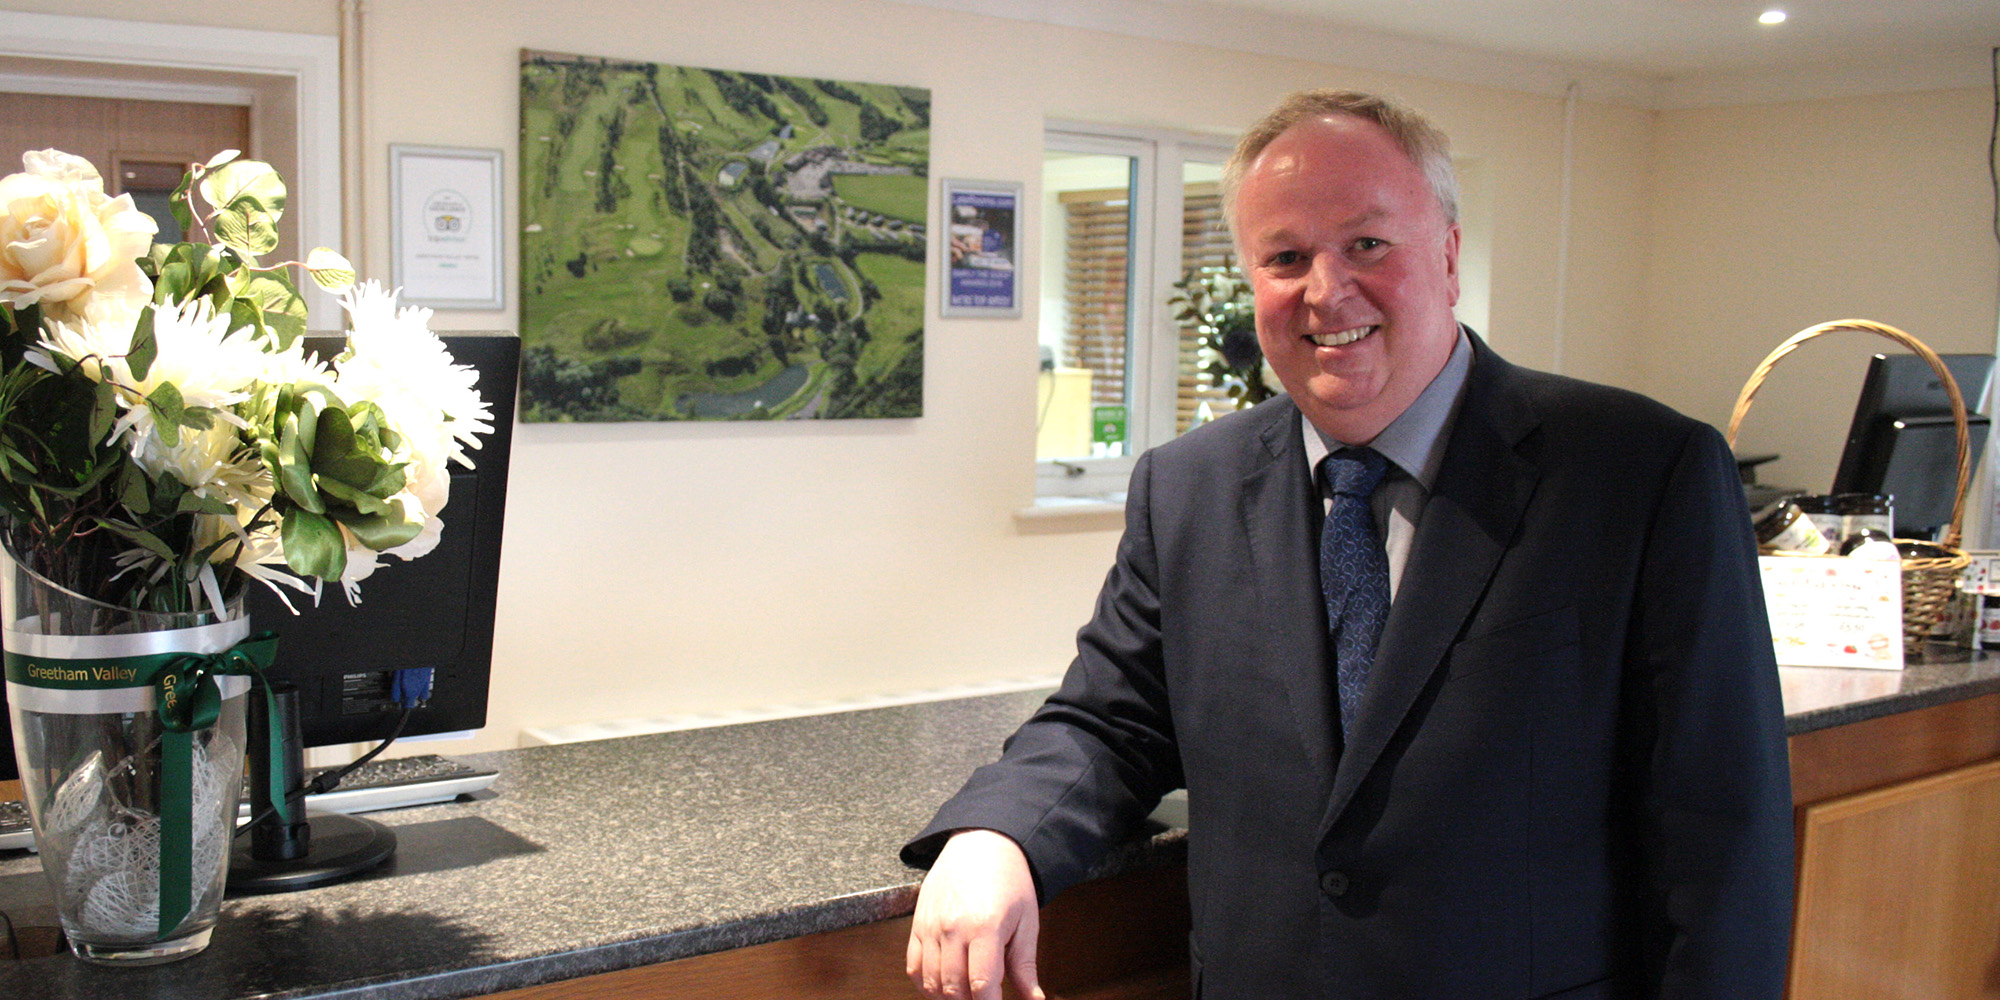 Sean Clarke, General Manager at Greetham Valley